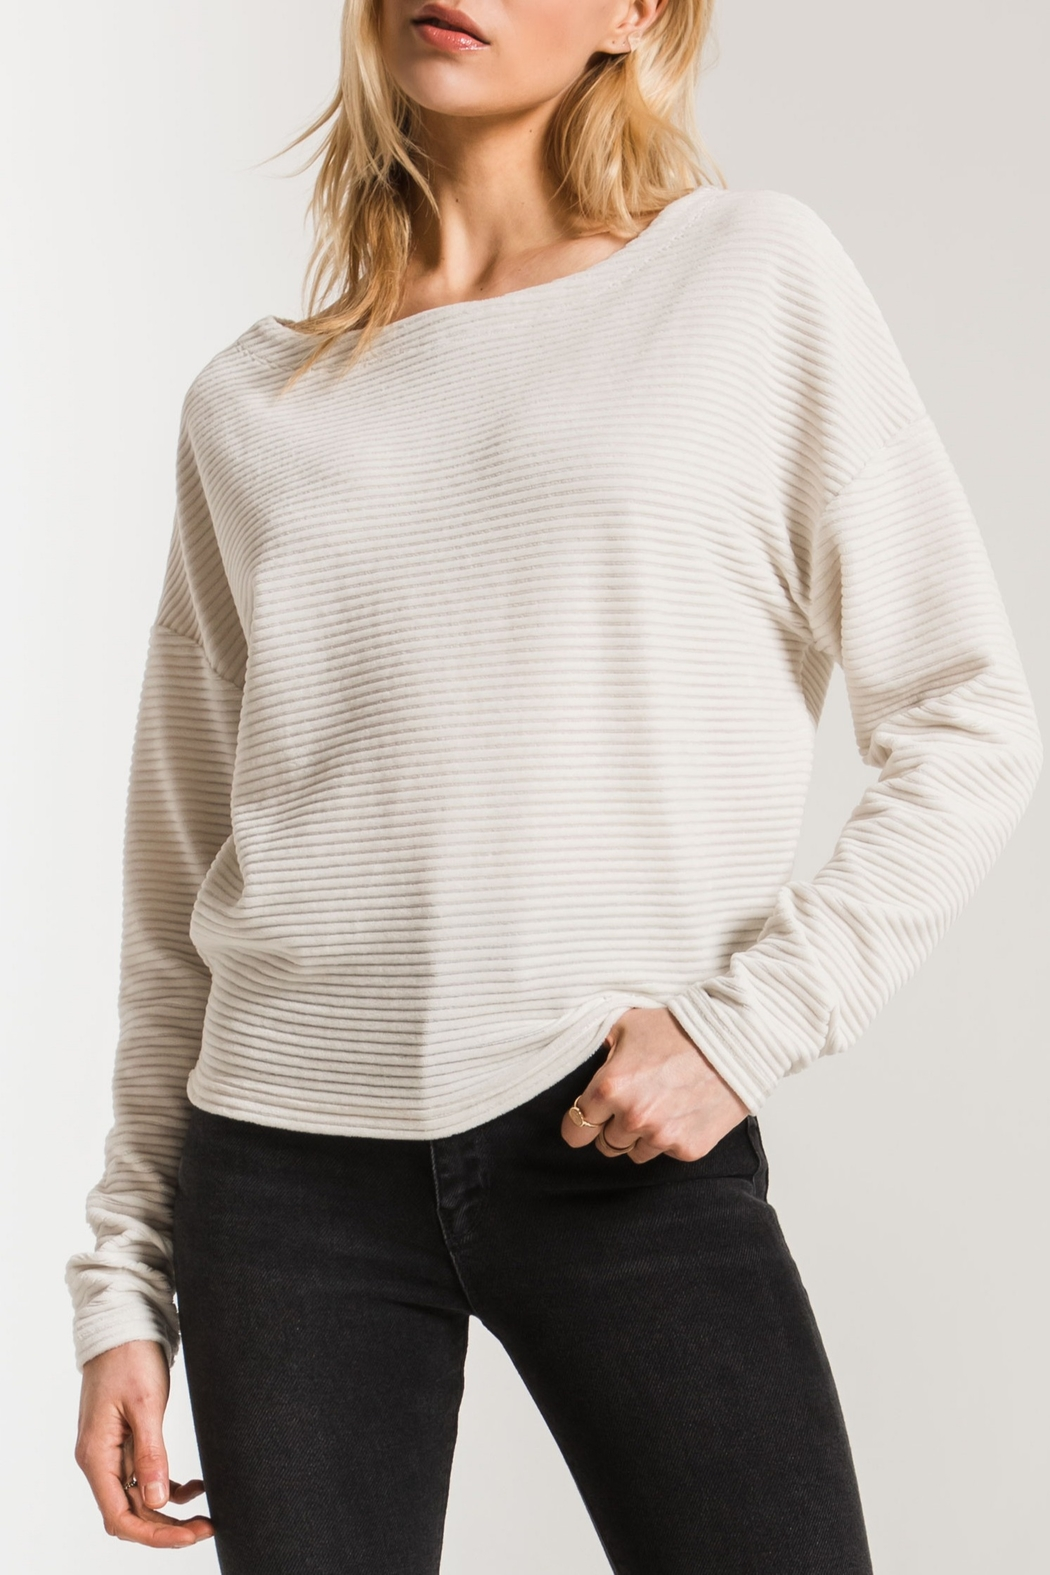 z supply Corduroy Boat-Neck Top - Front Cropped Image